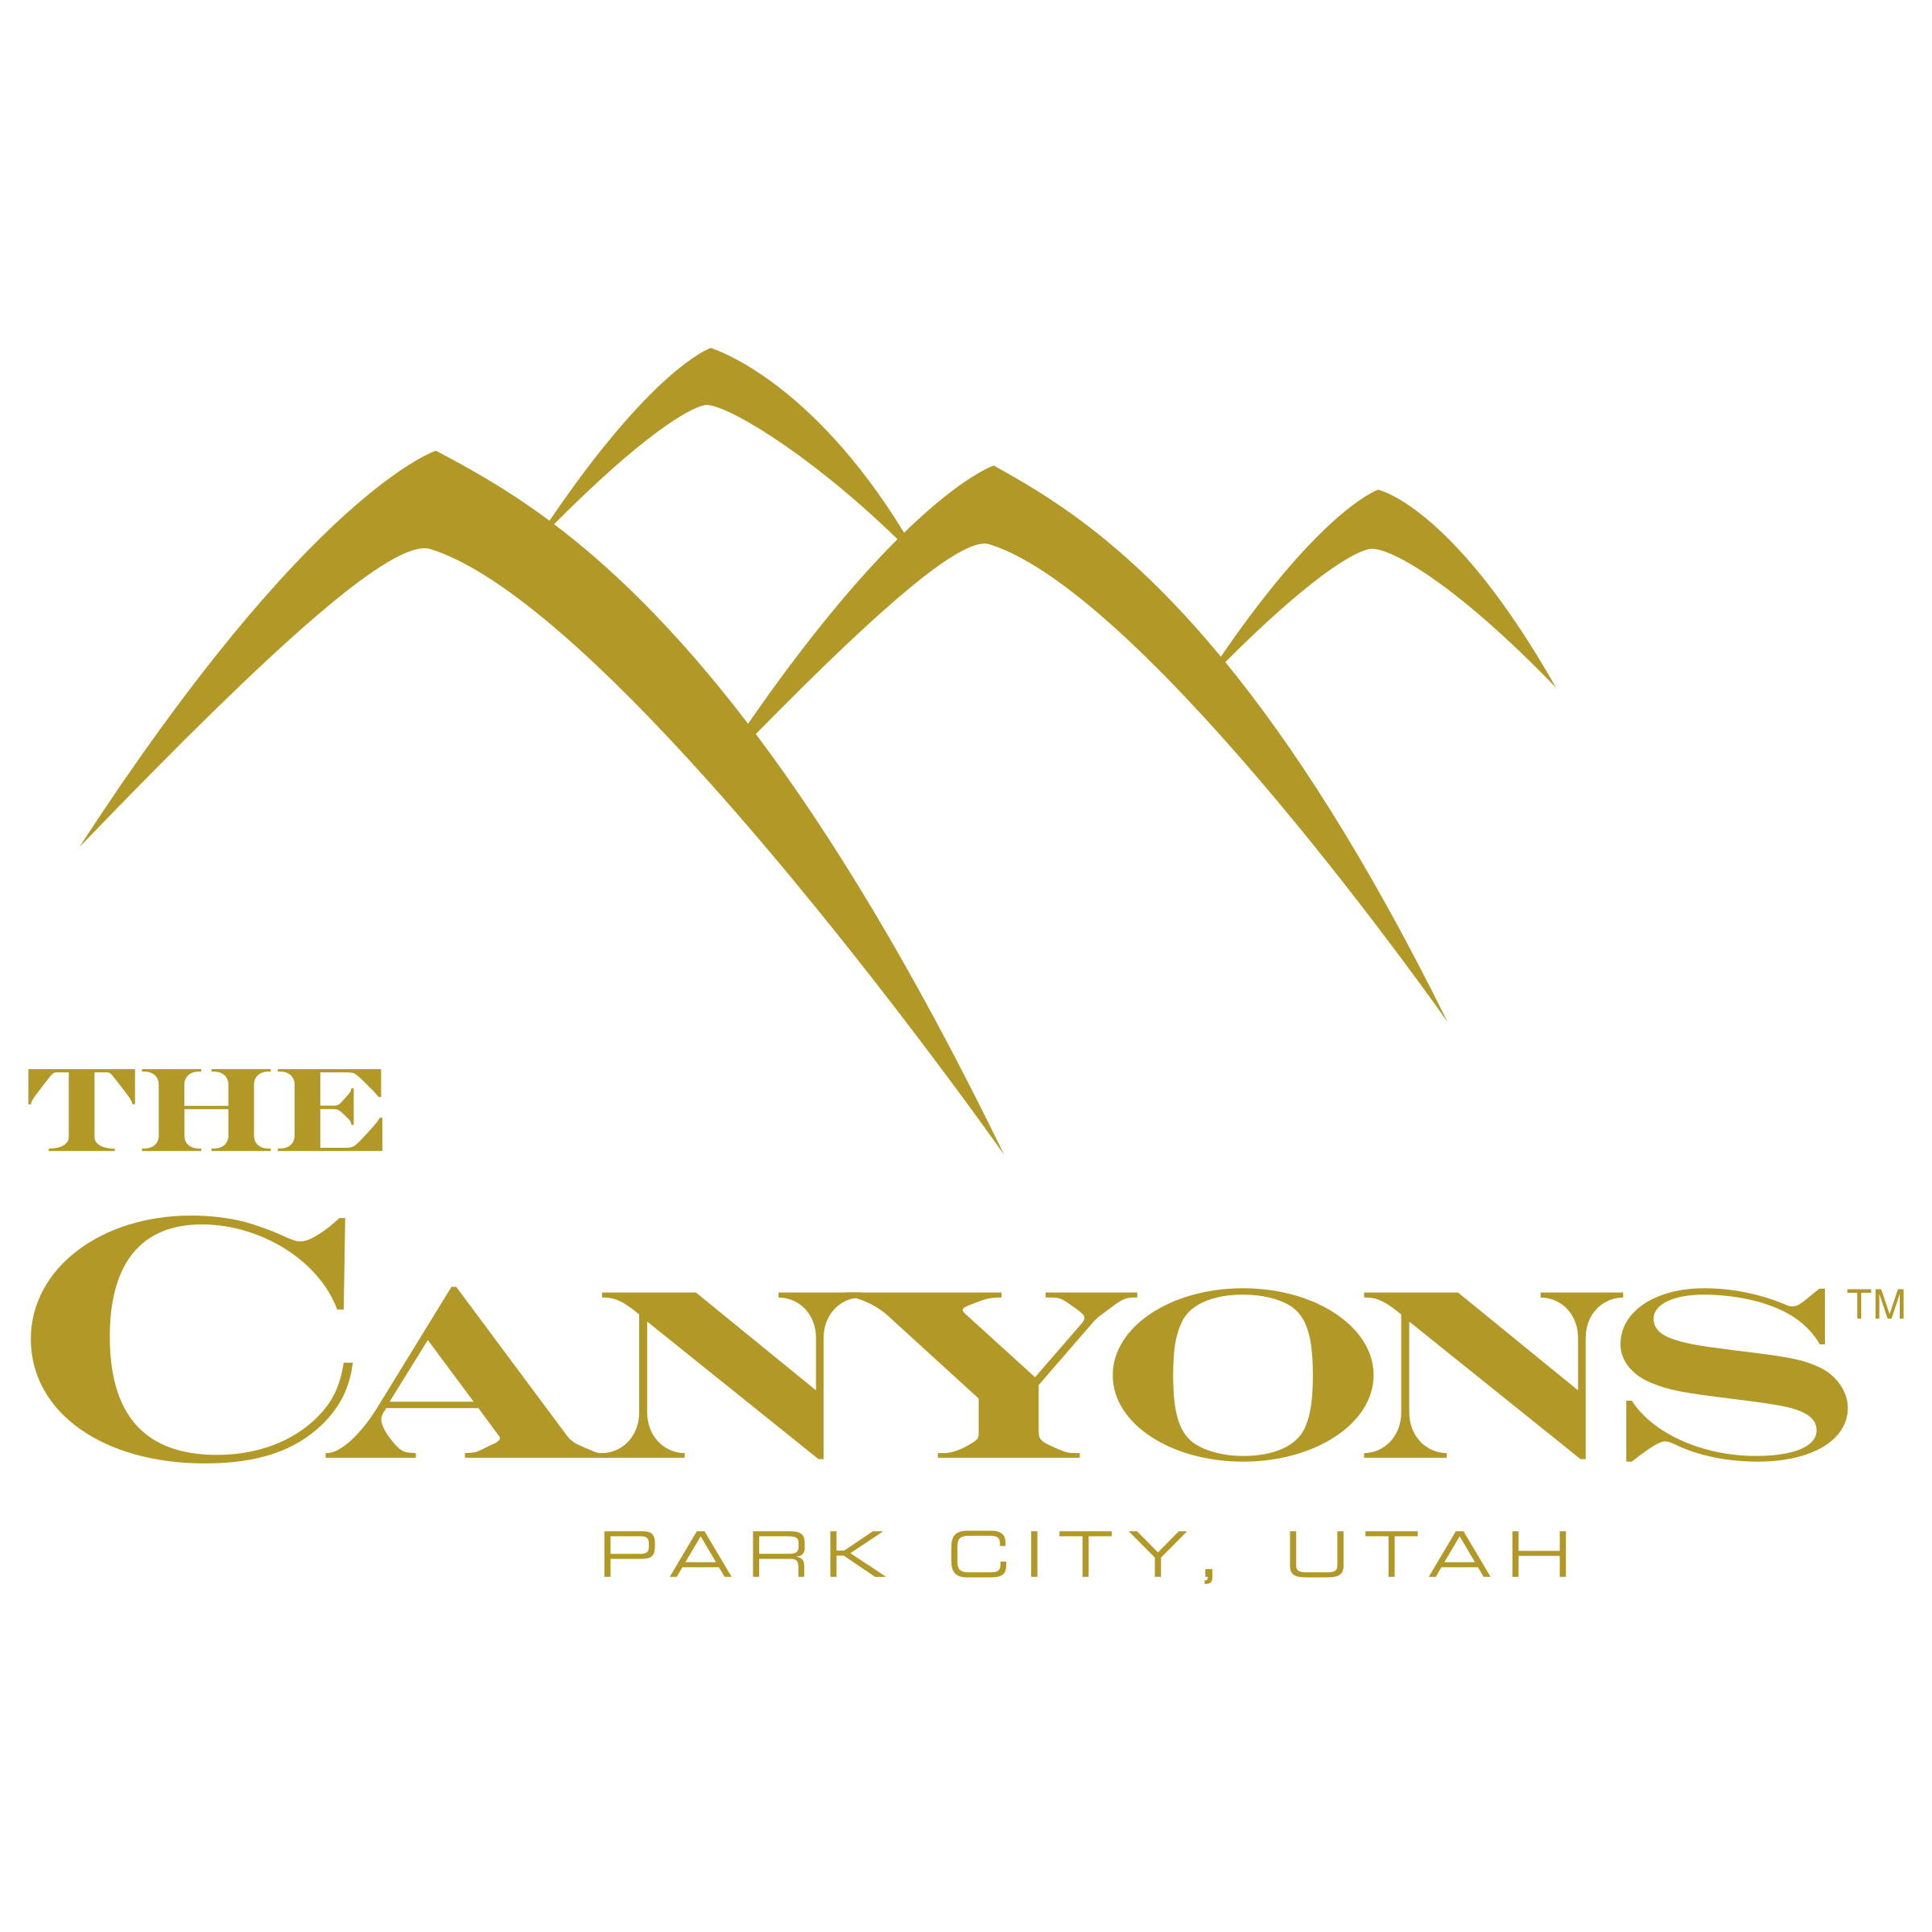 Canyon vector svg. The canyons logo png